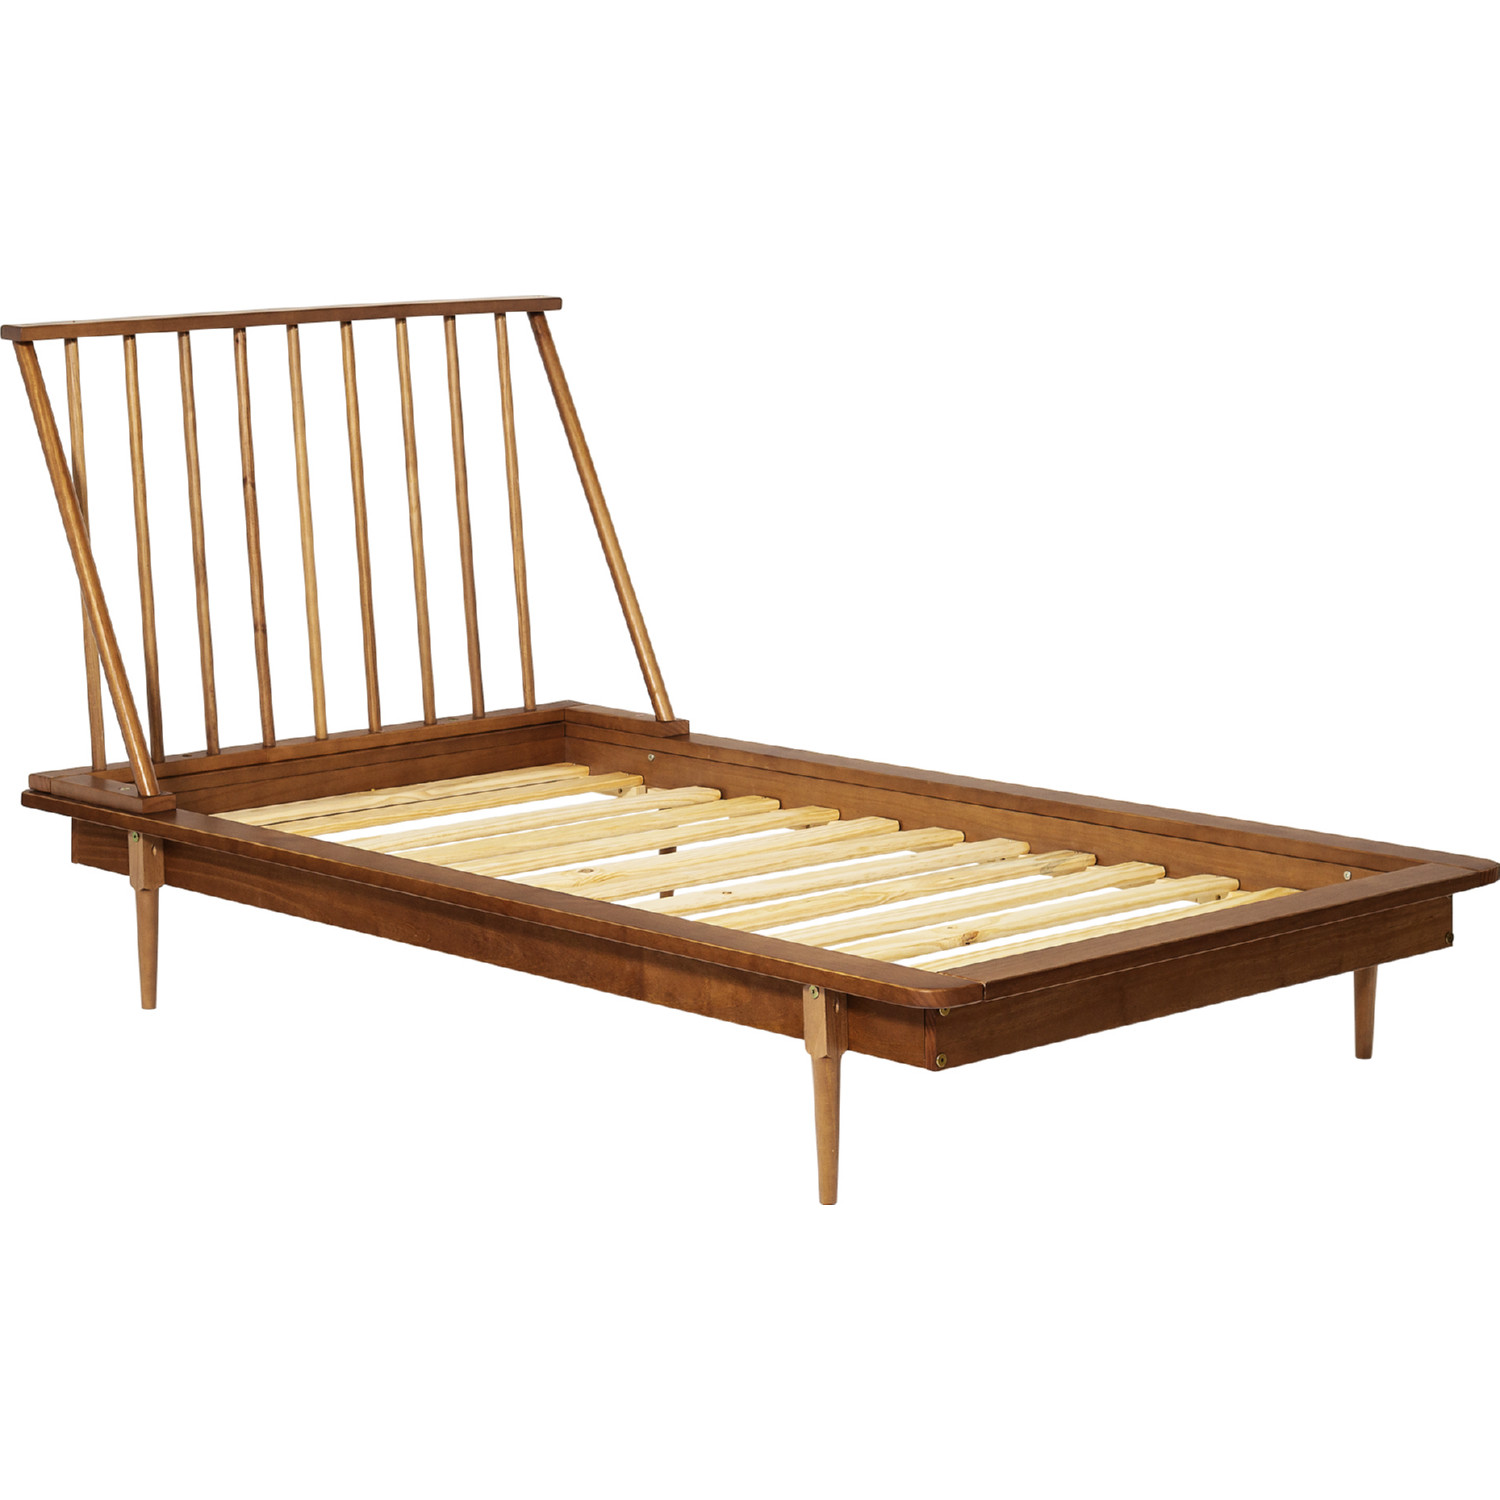 Gold Glass Dining Table, Walker Edison Btspinca Mid Century Modern Twin Wood Spindle Platform Bed In Caramel Finish